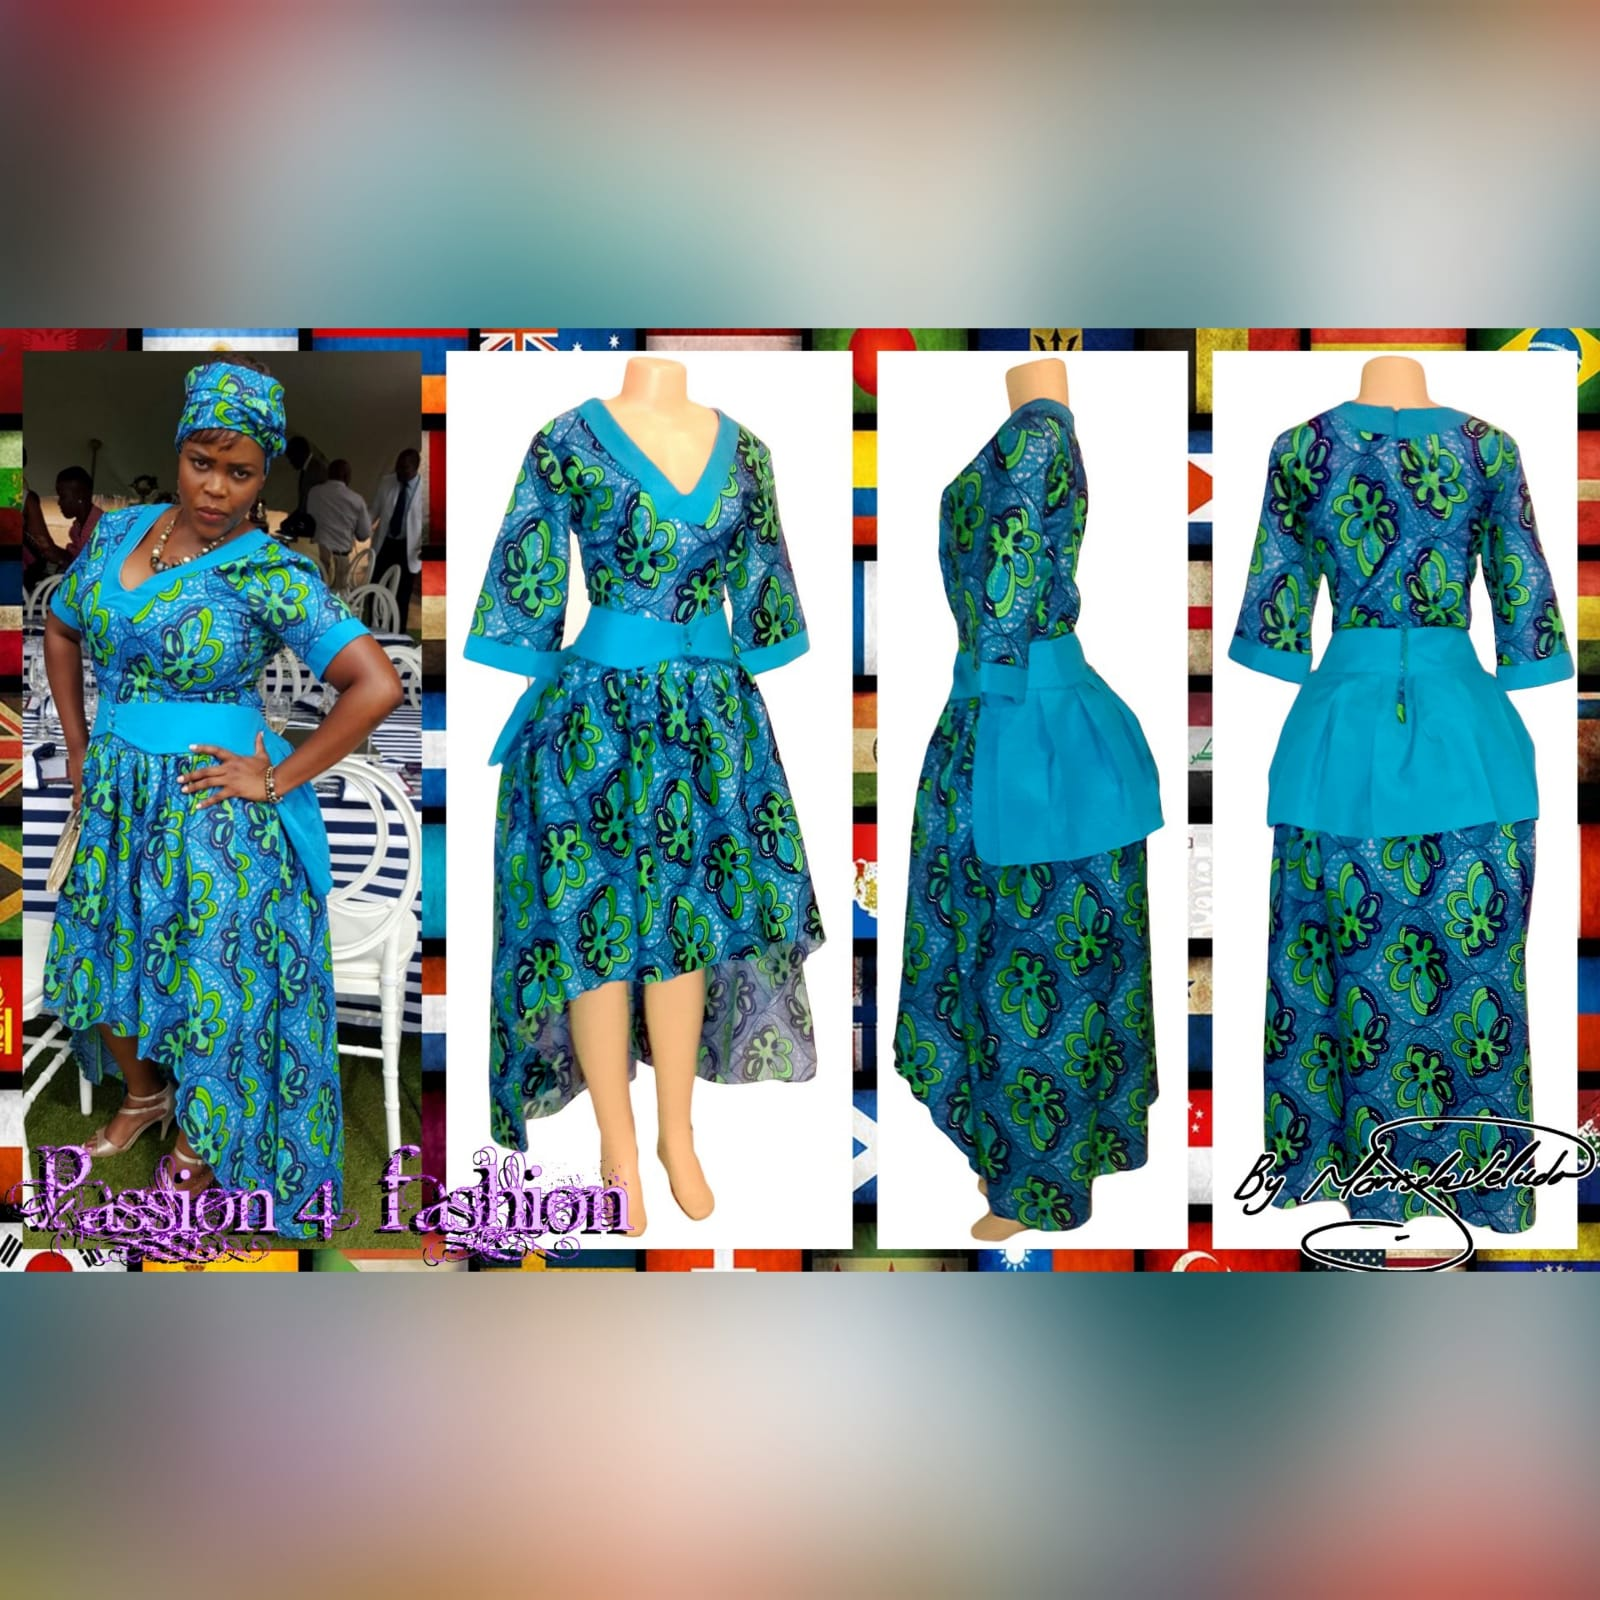 Modern traditional green and blue high low dress 6 modern traditional green and blue hi lo dress with a v neckline, 3/4 sleeves and a back peplum with a waistbelt. Matching doek.